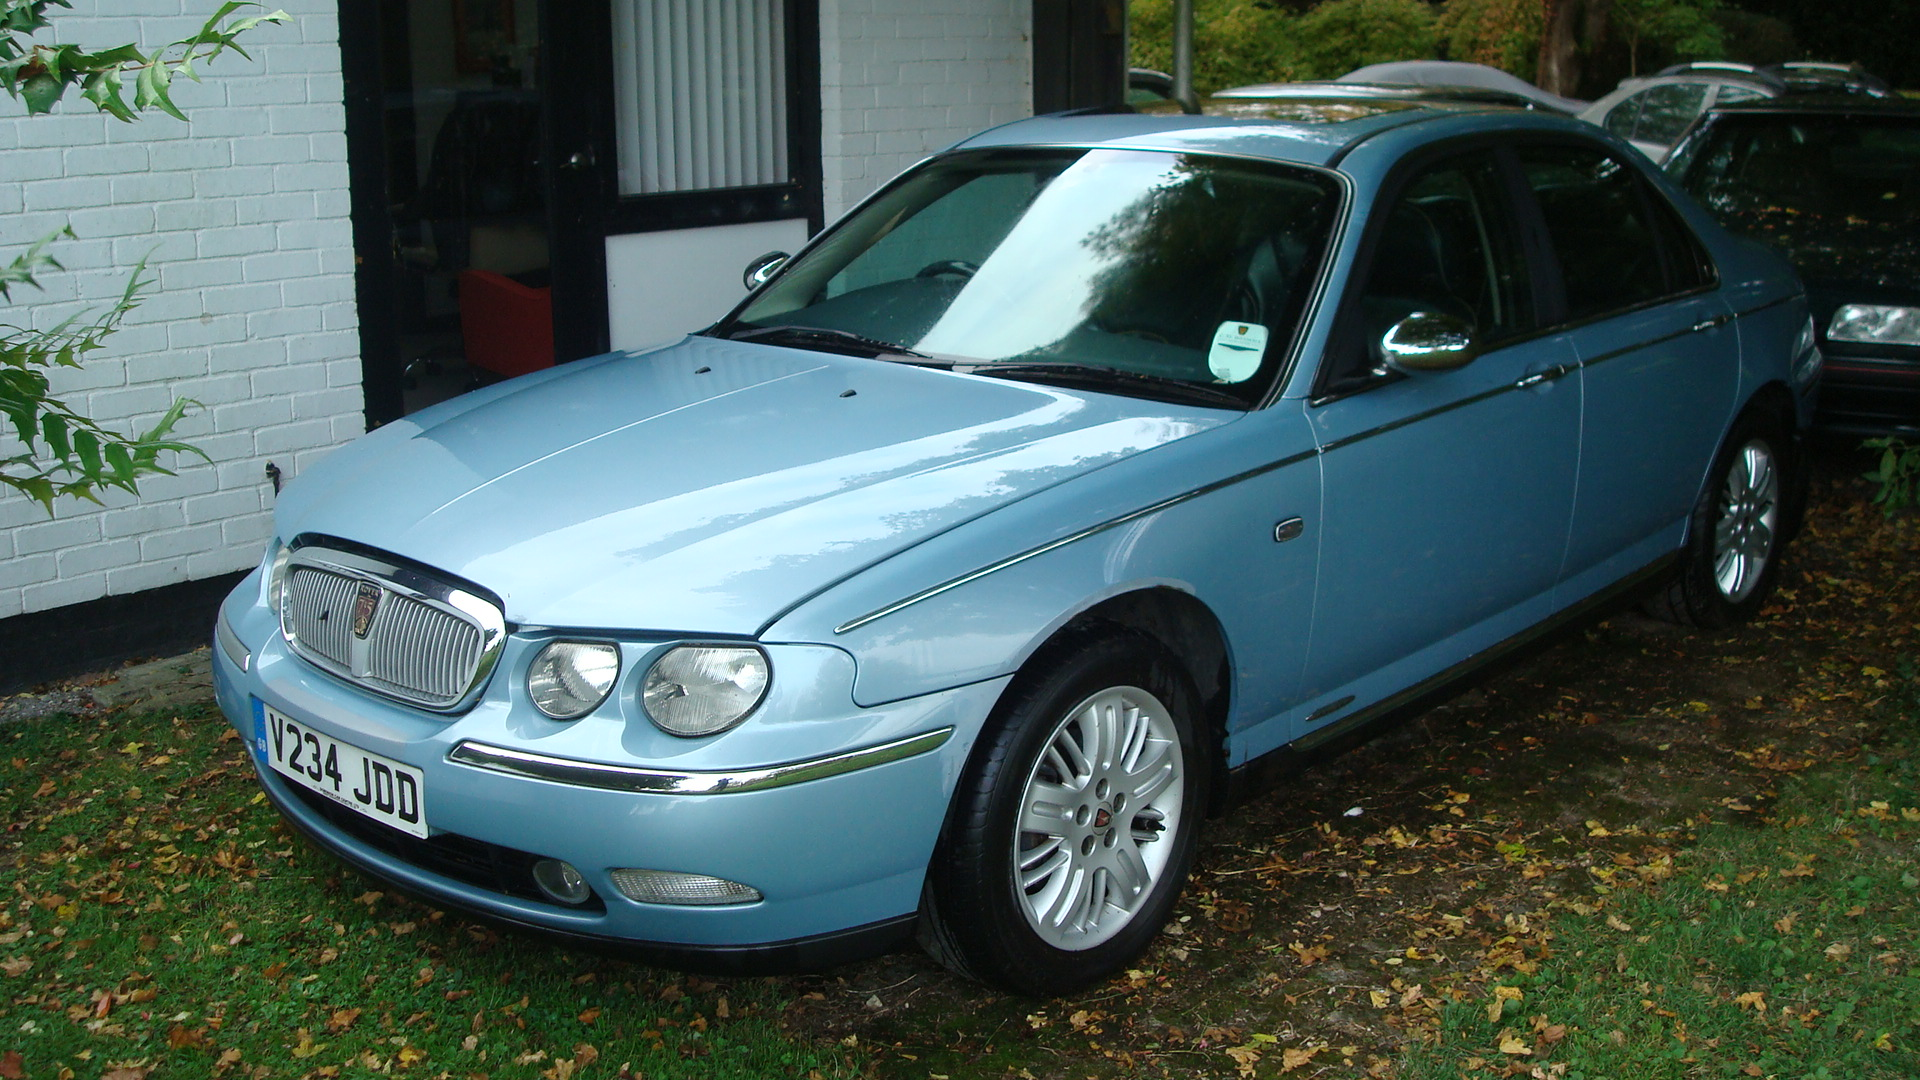 Rover 75 Owners Manual - The 75 and ZT Owners Club Forums